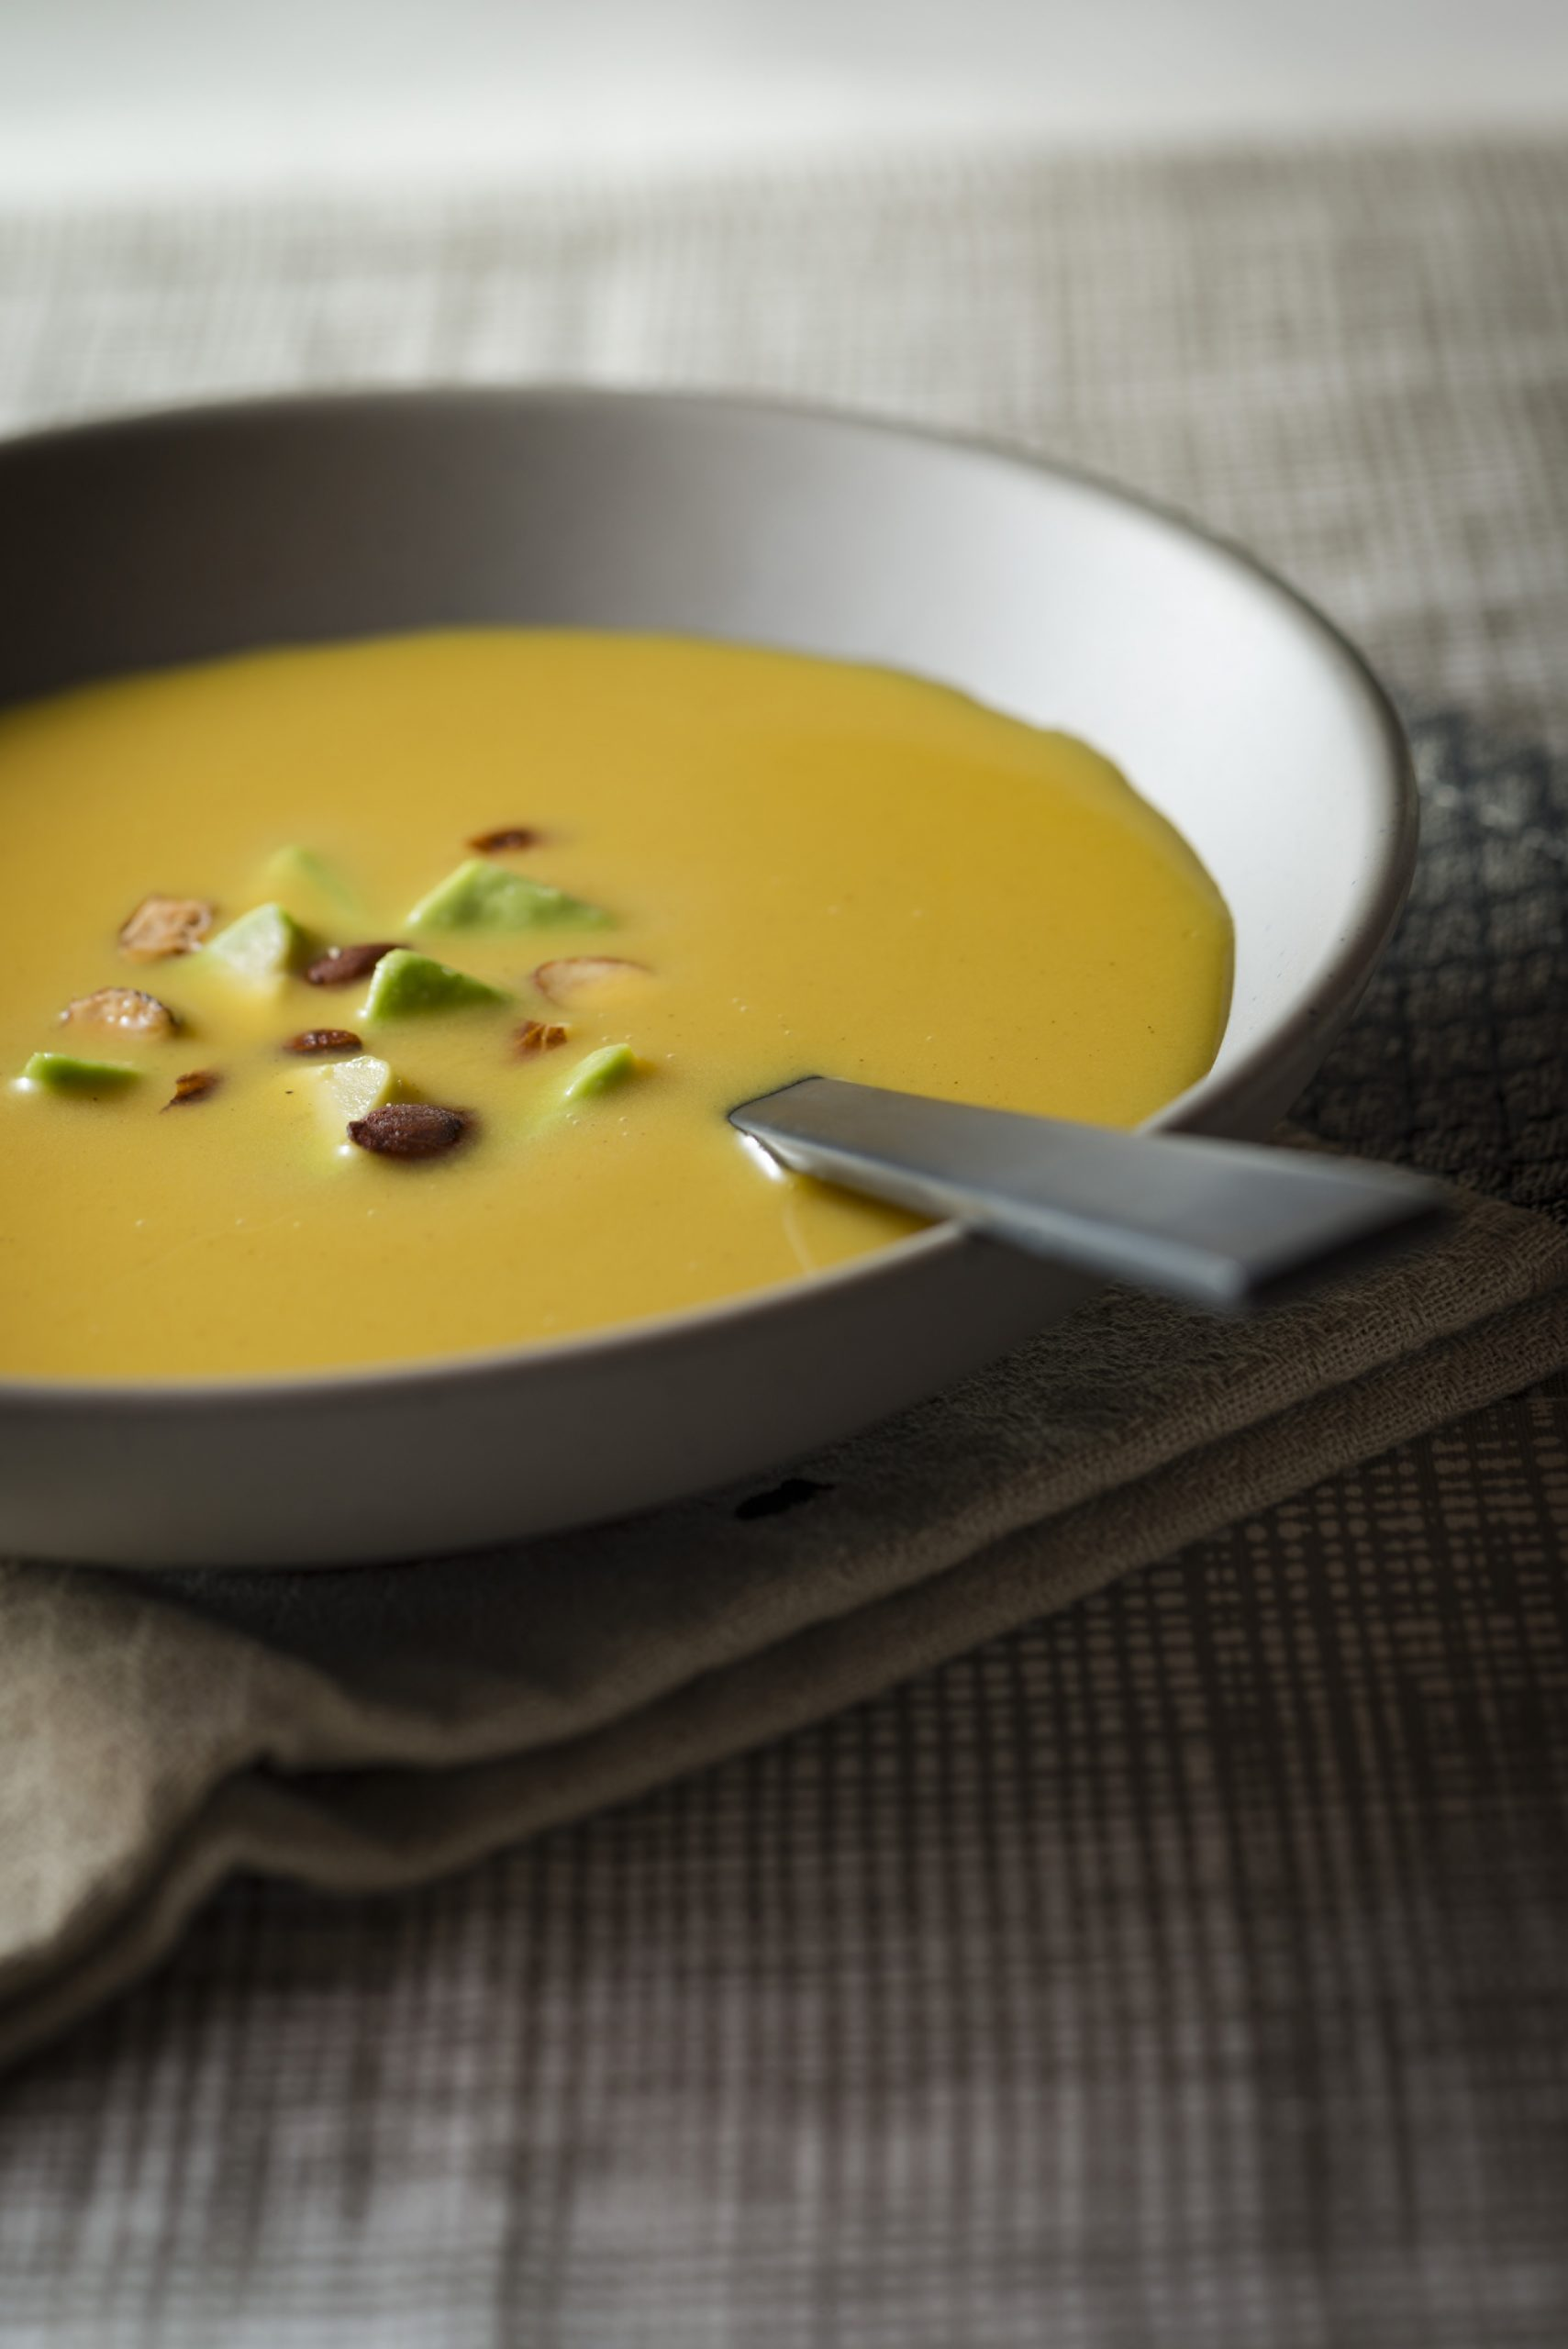 Savory soup is made for autumn